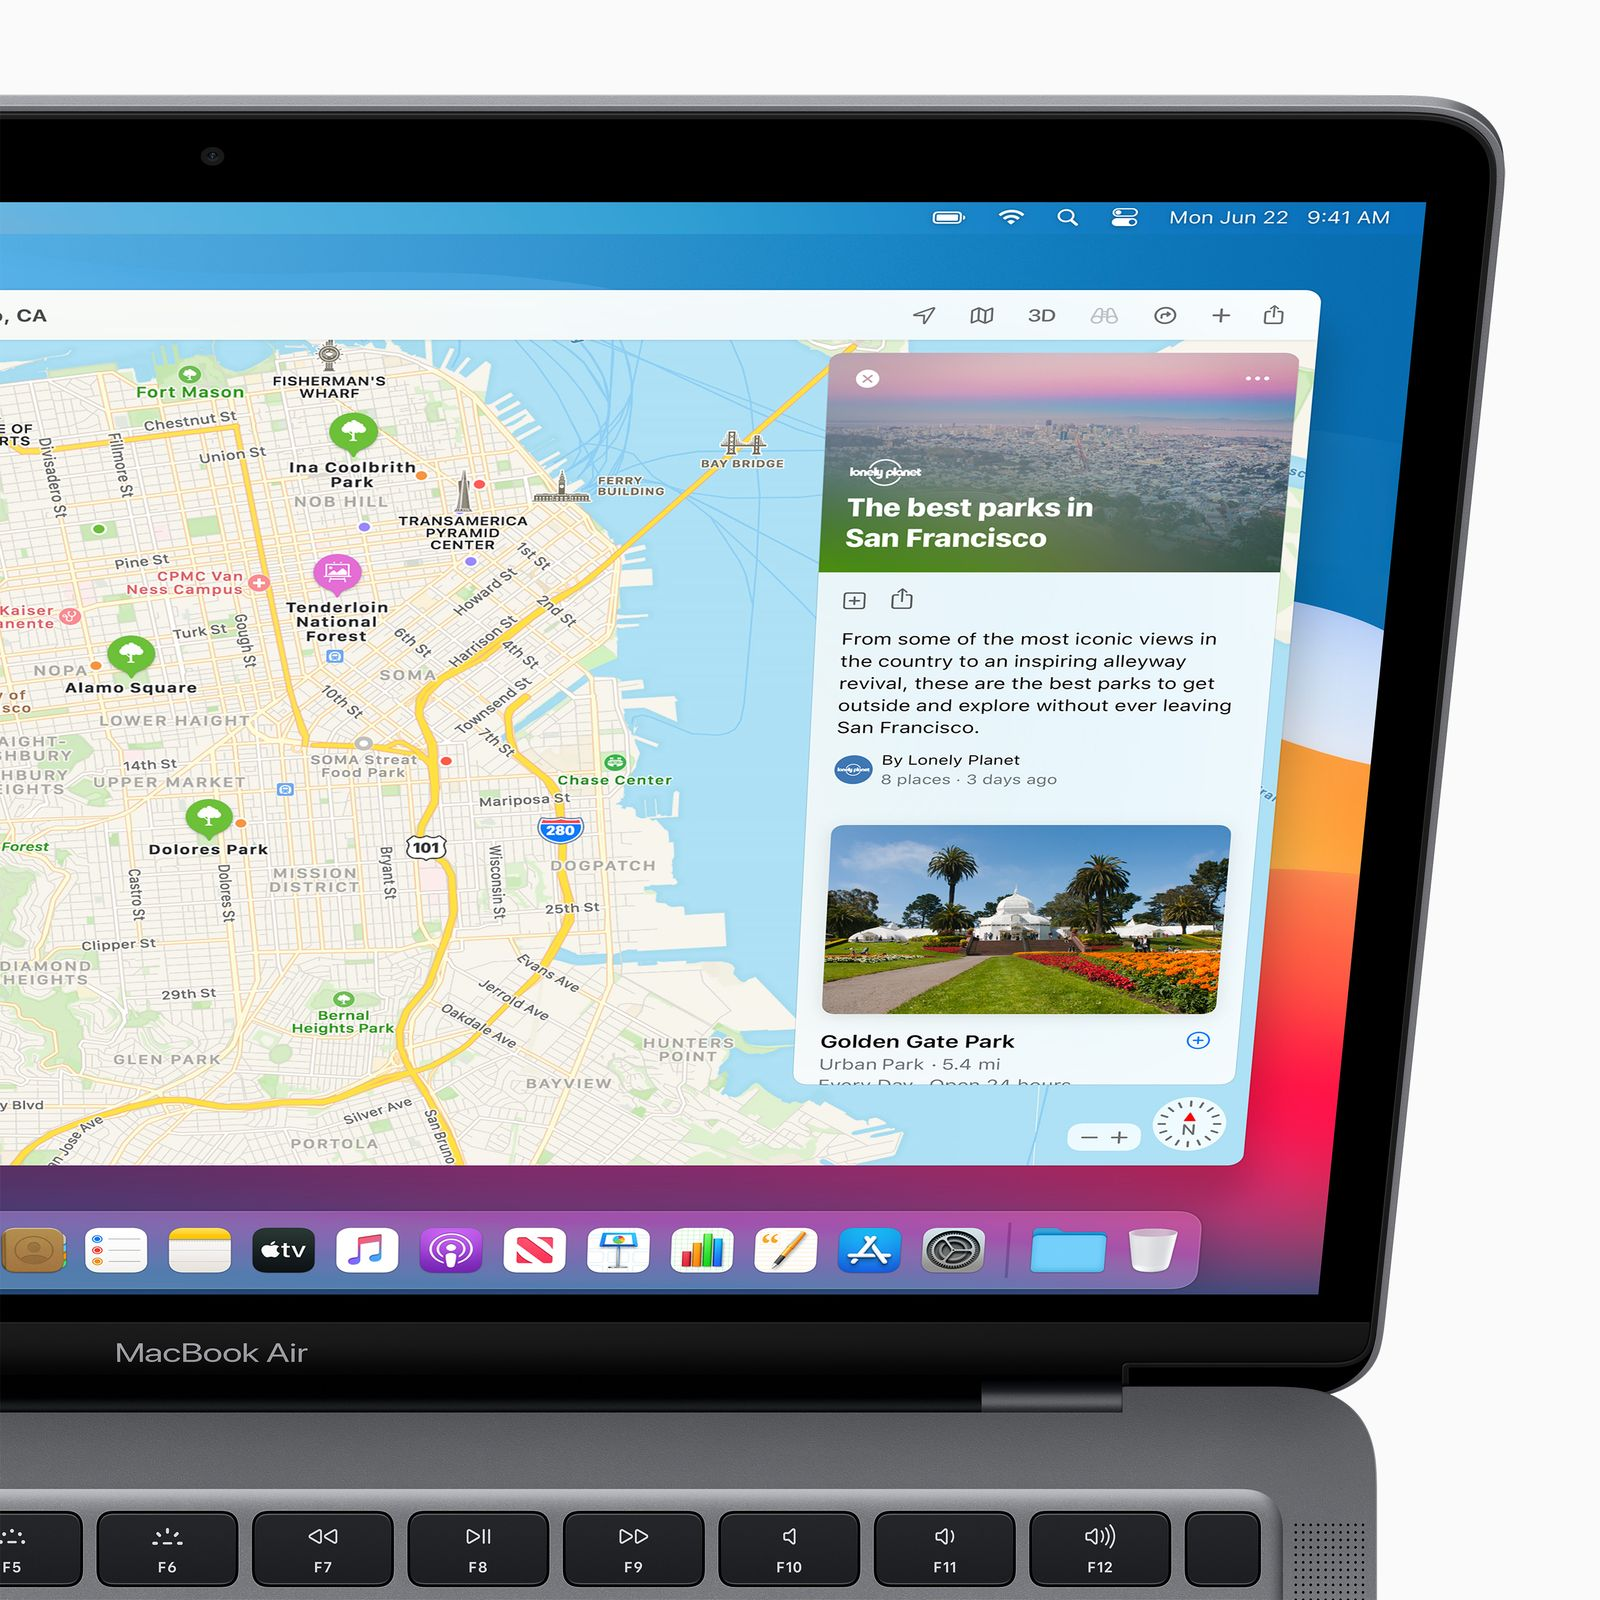 apple macos bigsur maps curatedguides 06222020 1